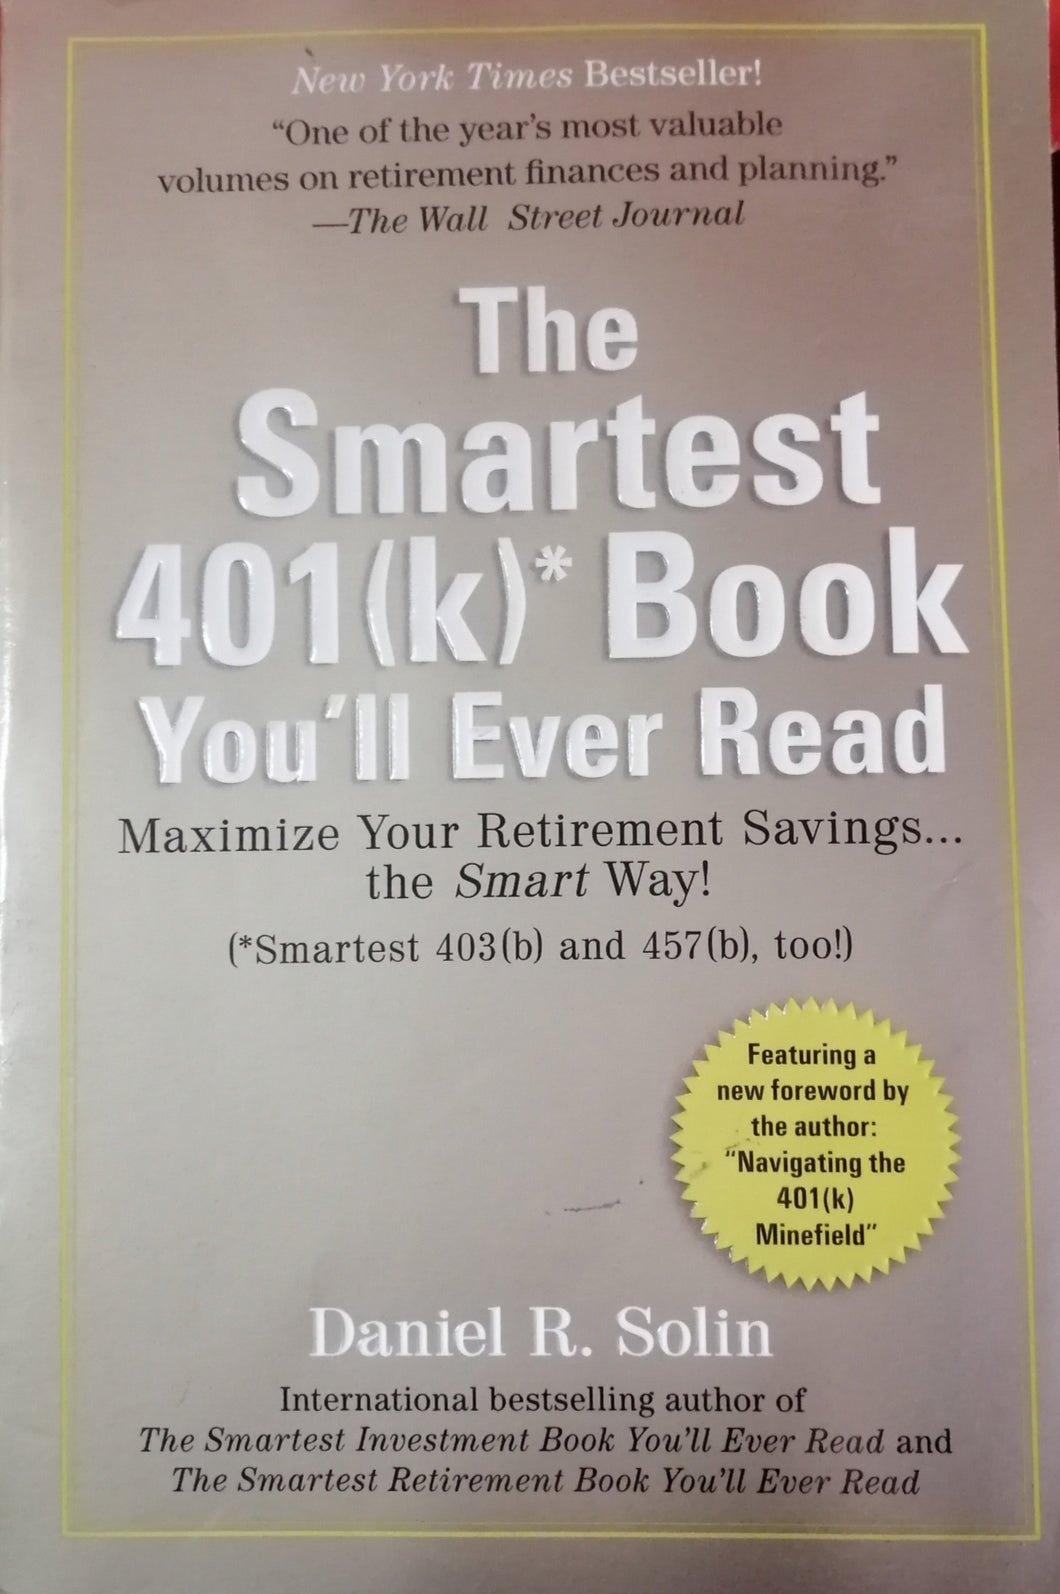 The smartest 401(k) book you'll ever read by: Daniel R.Solin